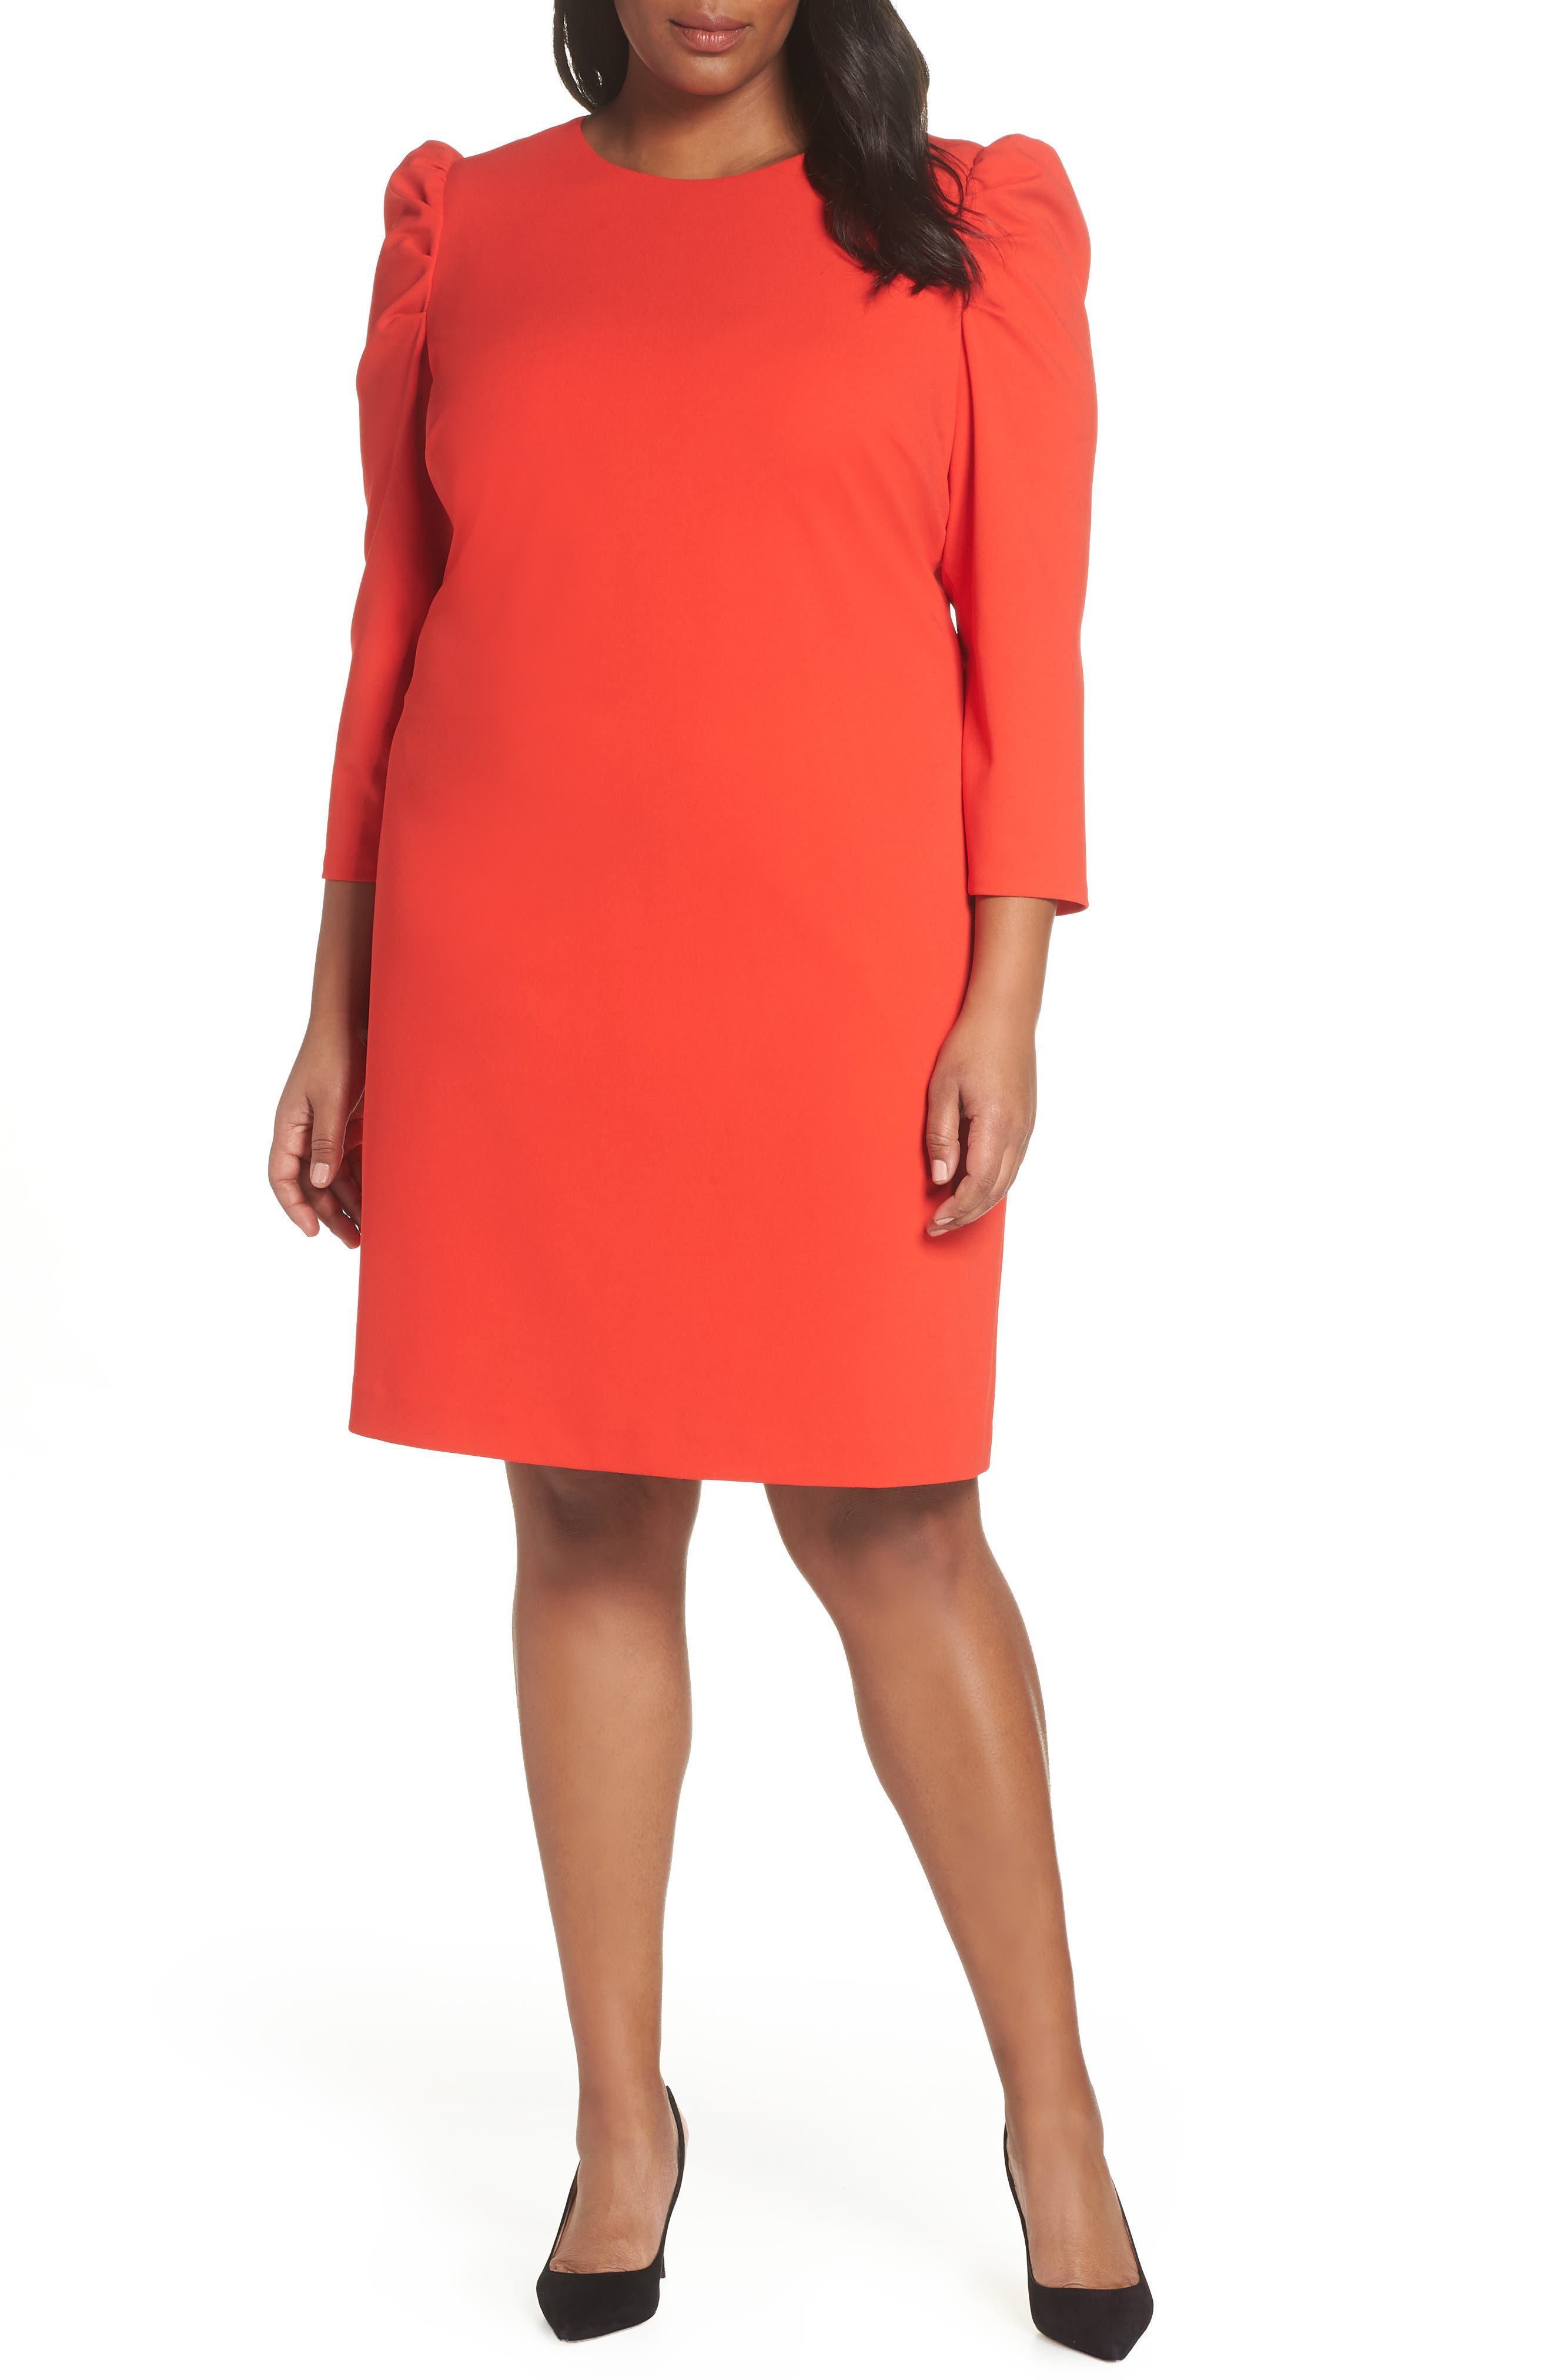 Plus Size Vince Camuto Puff Shoulder Shift Dress, Red